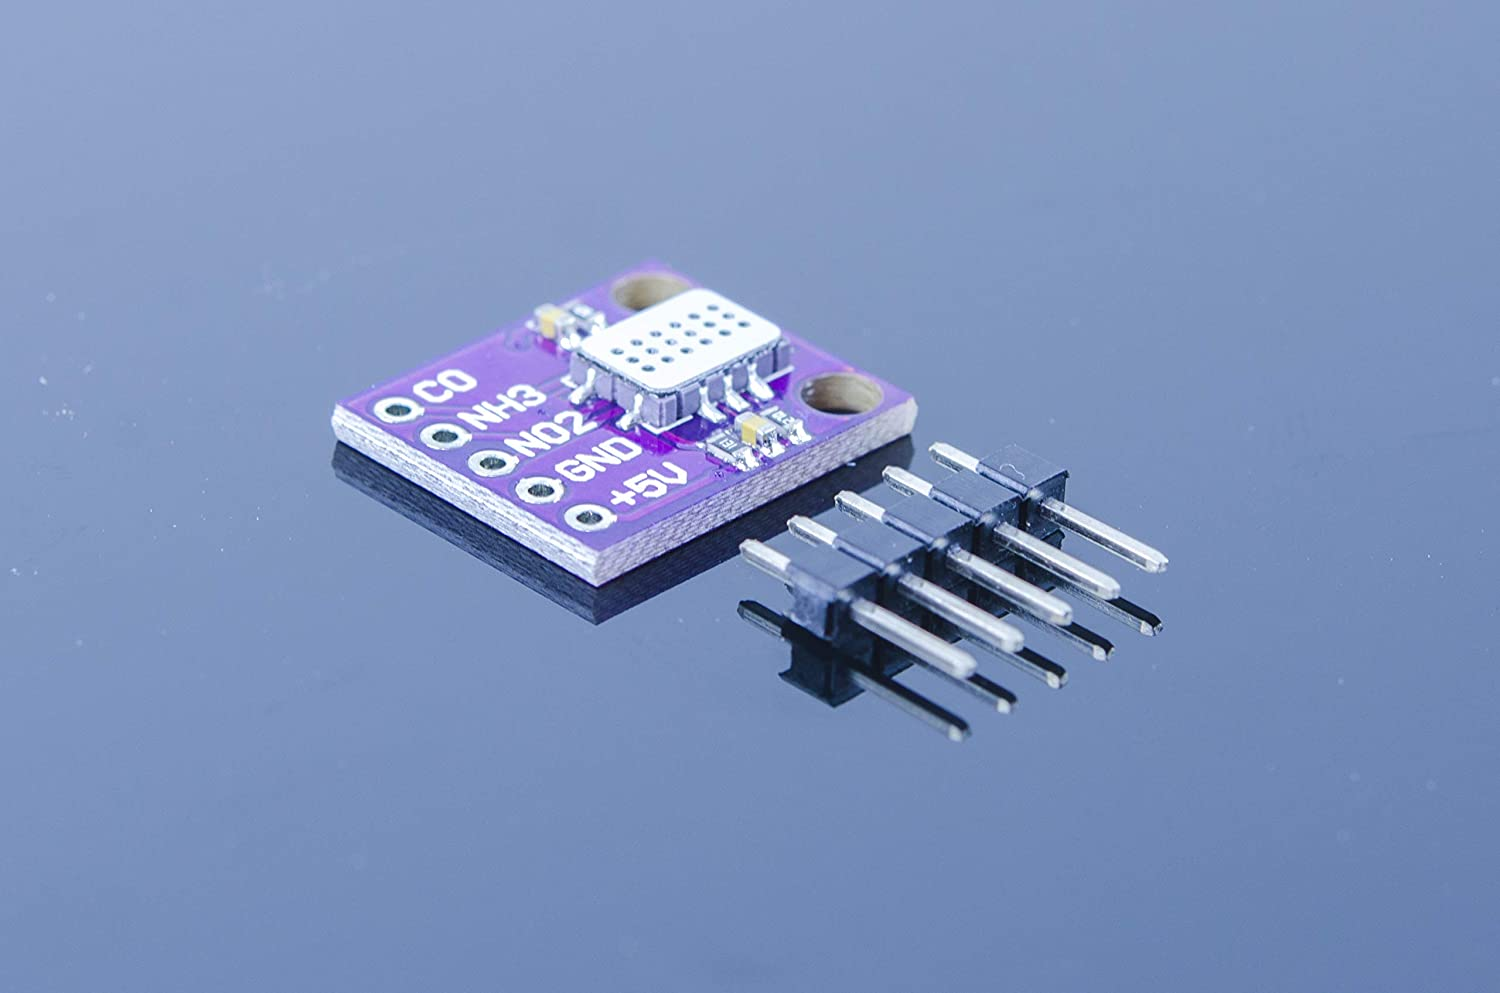 ACROBOTIC MiCS6814 Combined Carbon Monoxide, Nitrogen Dioxide, and Ammonia Gas Analog Sensor Breakout Board for Arduino Raspberry Pi ESP8266 MiCS-6814 5VDC CO NO2 NH3 VOC